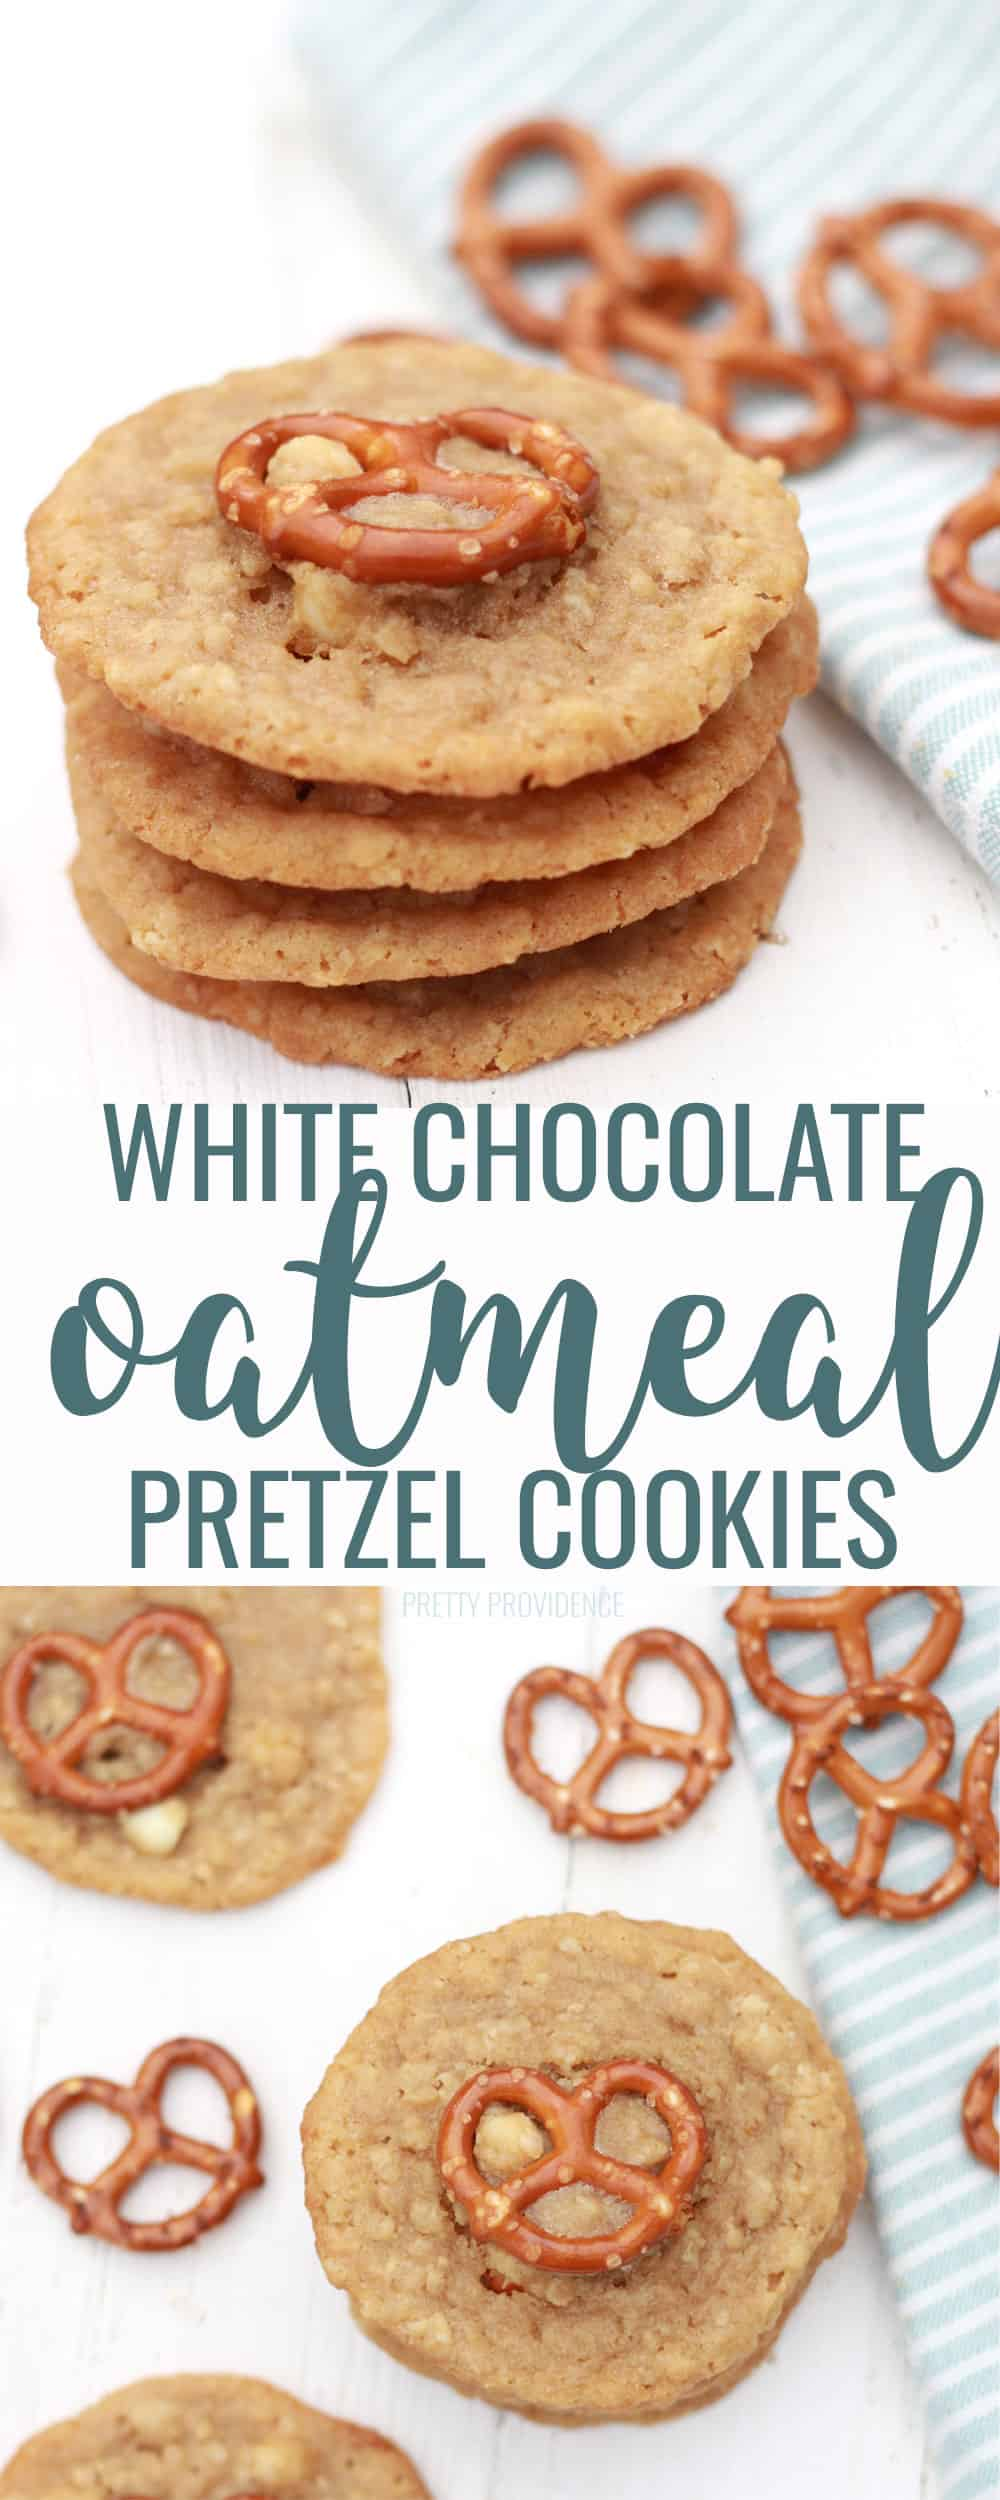 White Chocolate Chip Oatmeal Pretzel Cookies! Yes, it's a delicious MOUTHFUL! The sweet and salty flavors make a perfect cookie. #cookies #cookie #cookierecipe #whitechocolatechips #pretzel #sweetandsalty #easycookierecipe #christmas #baking #easyfoodrecipe